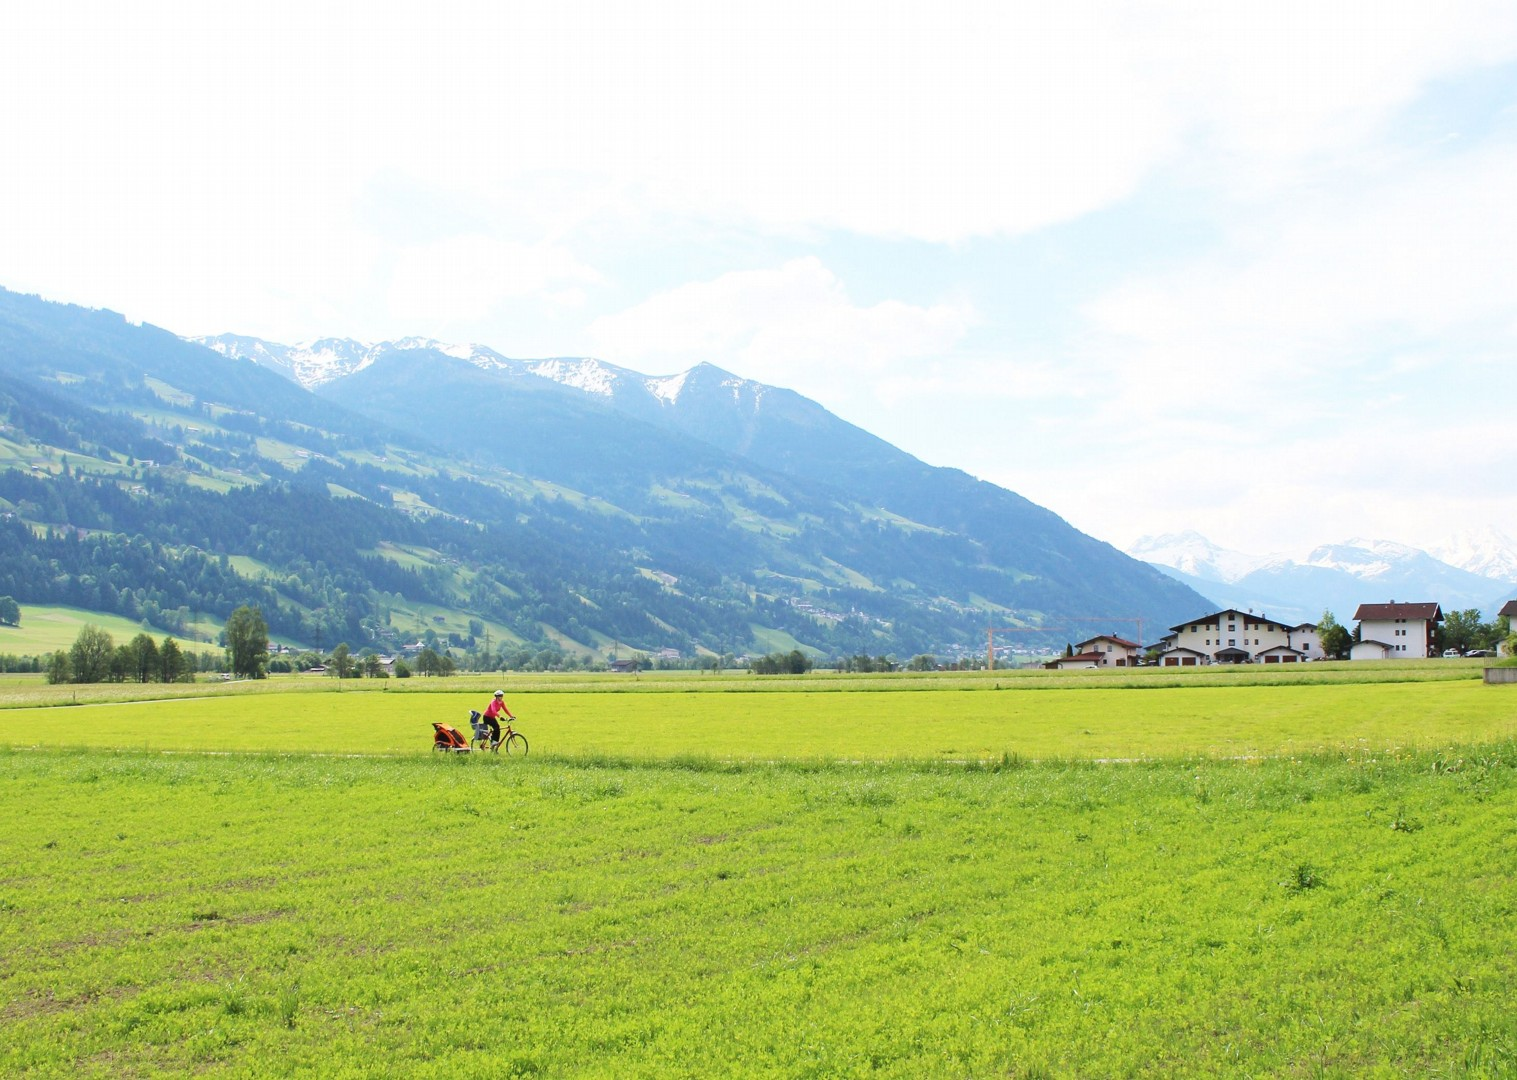 valleys-austria-family-cycling-holiday-self-guided.jpg - Austria - Tyrolean Valleys - Family Cycling